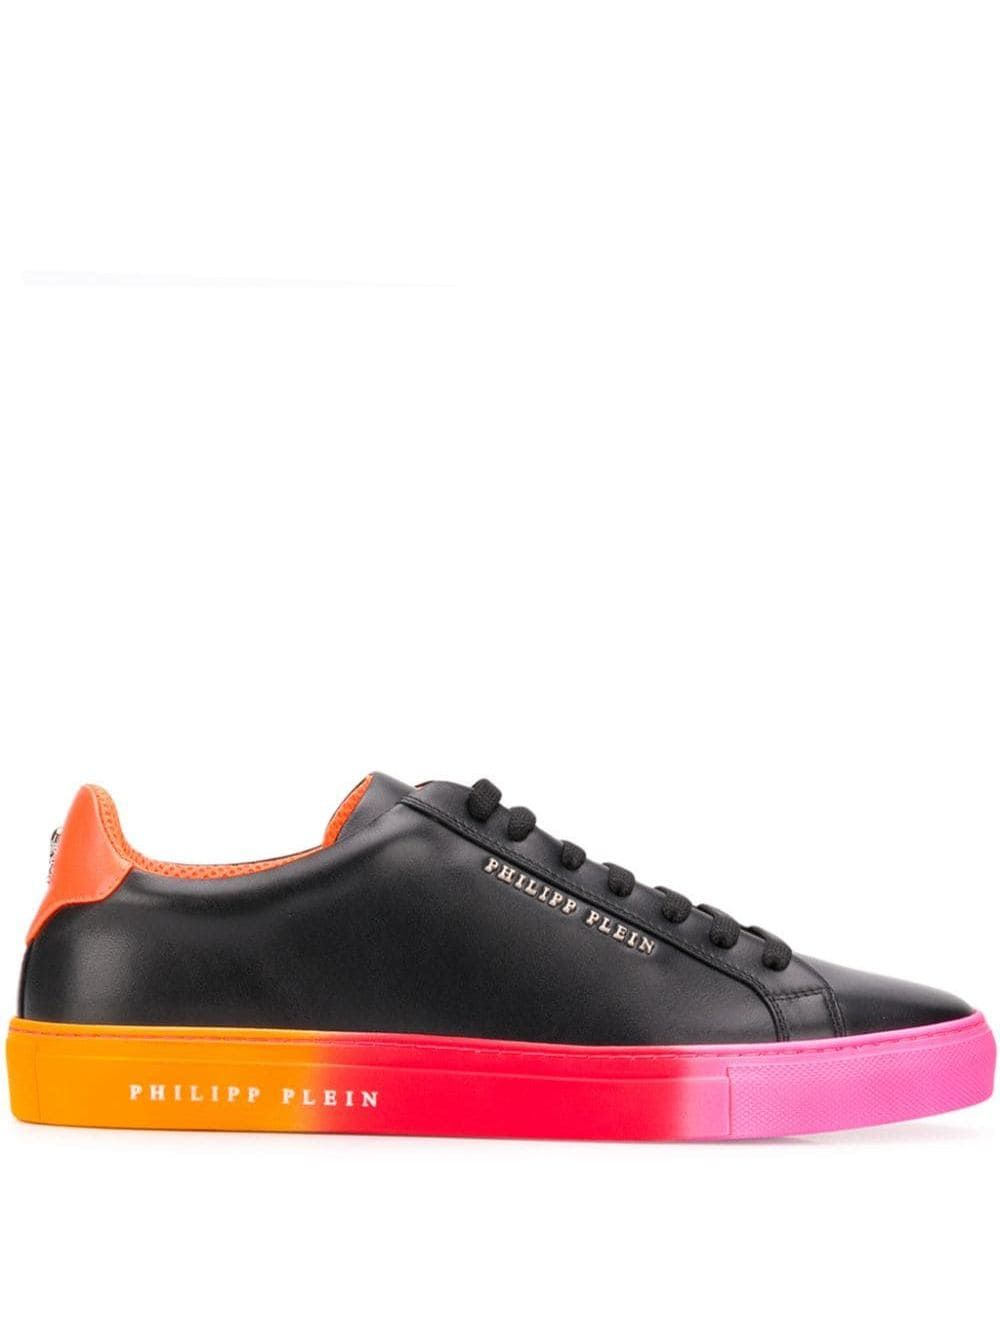 Philipp Plein gradient low top sneakers Black | Sneakers